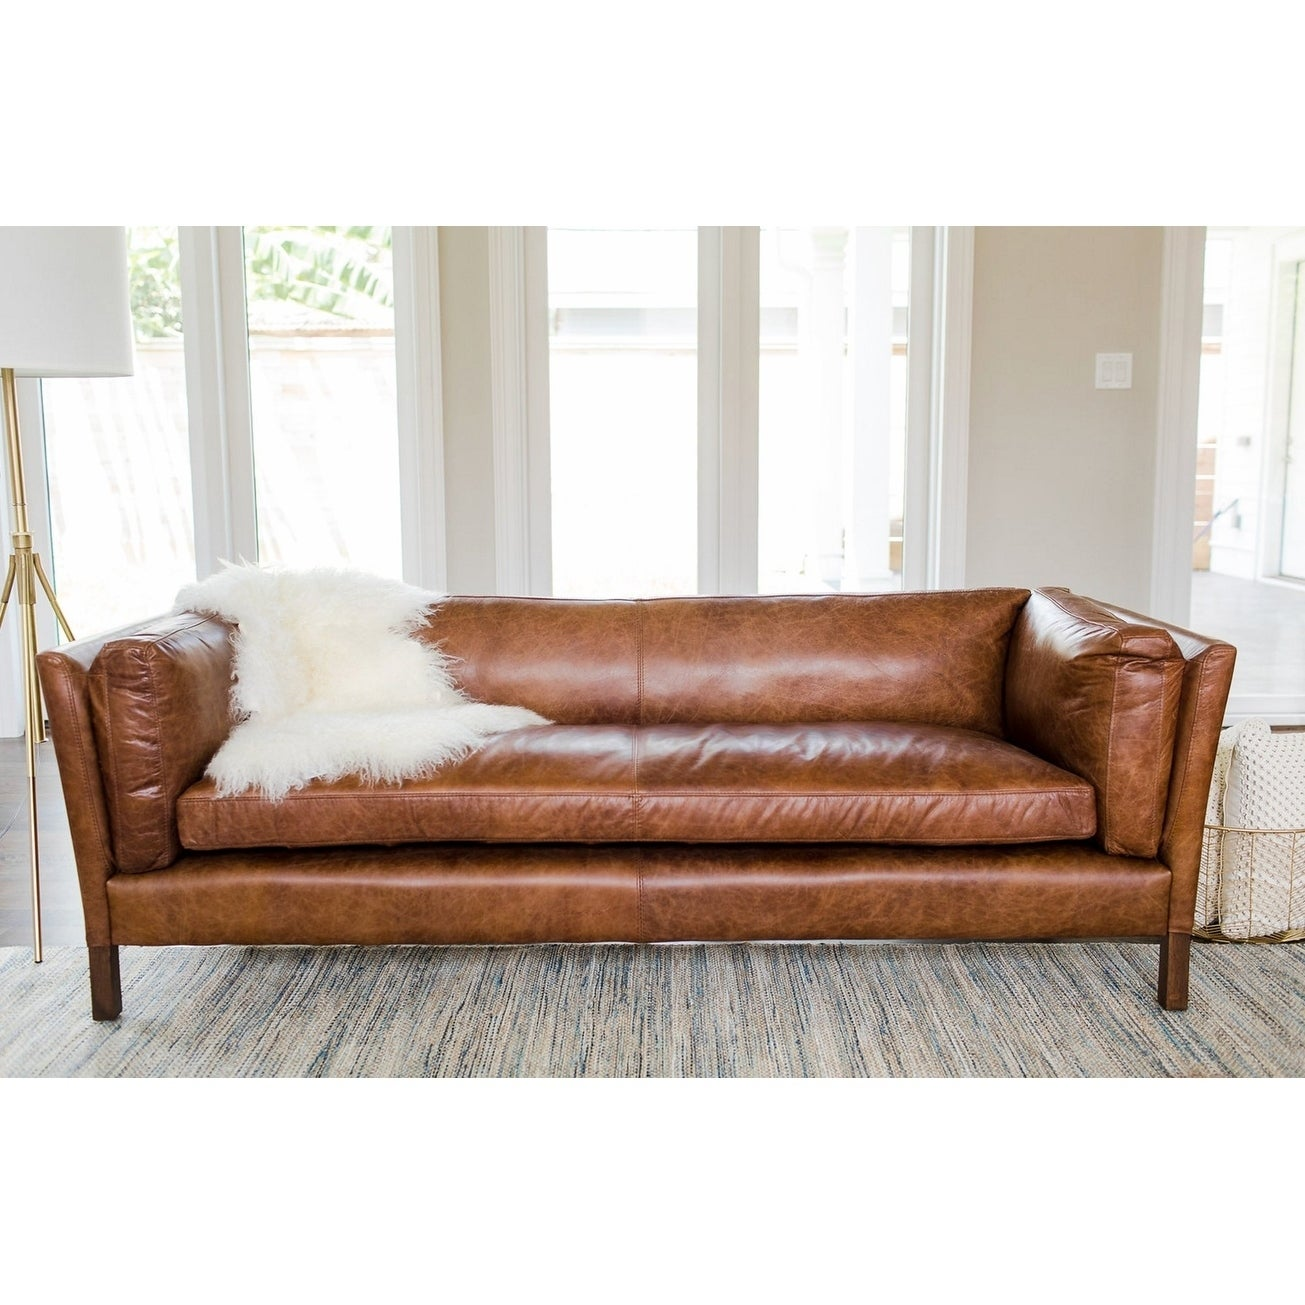 Shop Modern Leather Sofa Mid Century Modern Couch Top Grain